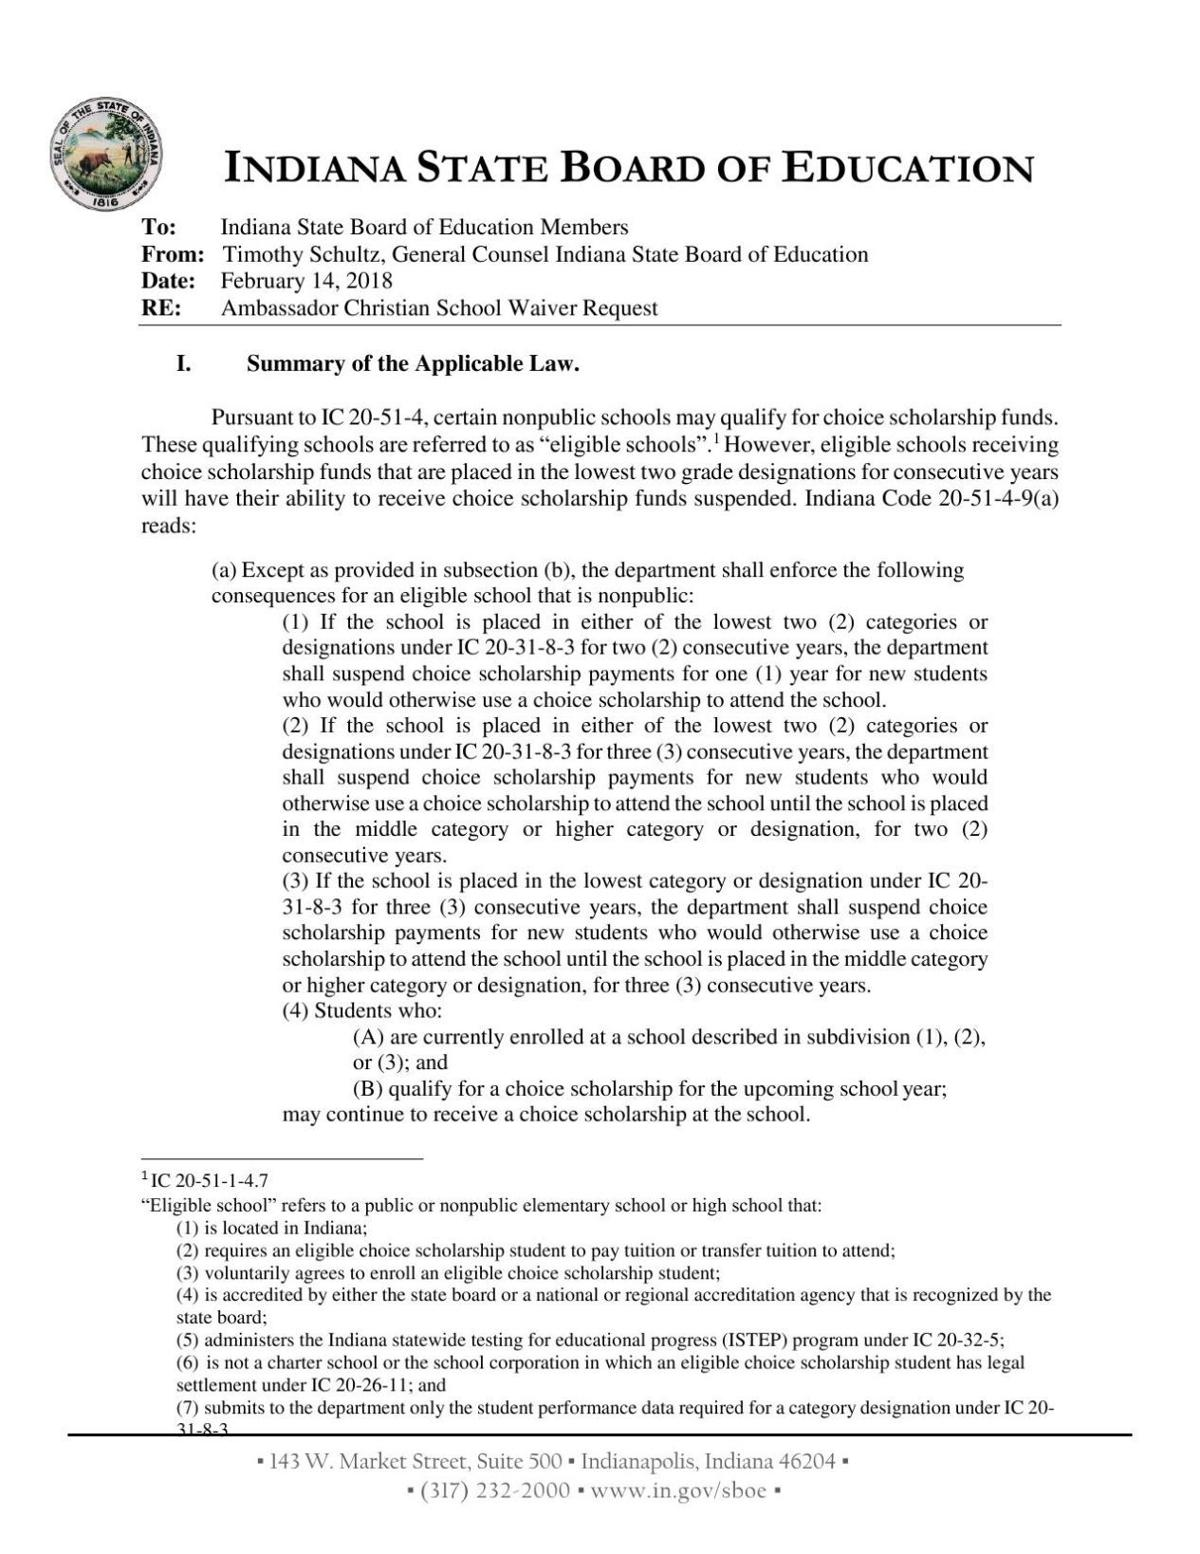 SBOE staff memo on Ambassador Christian Academy waiver request